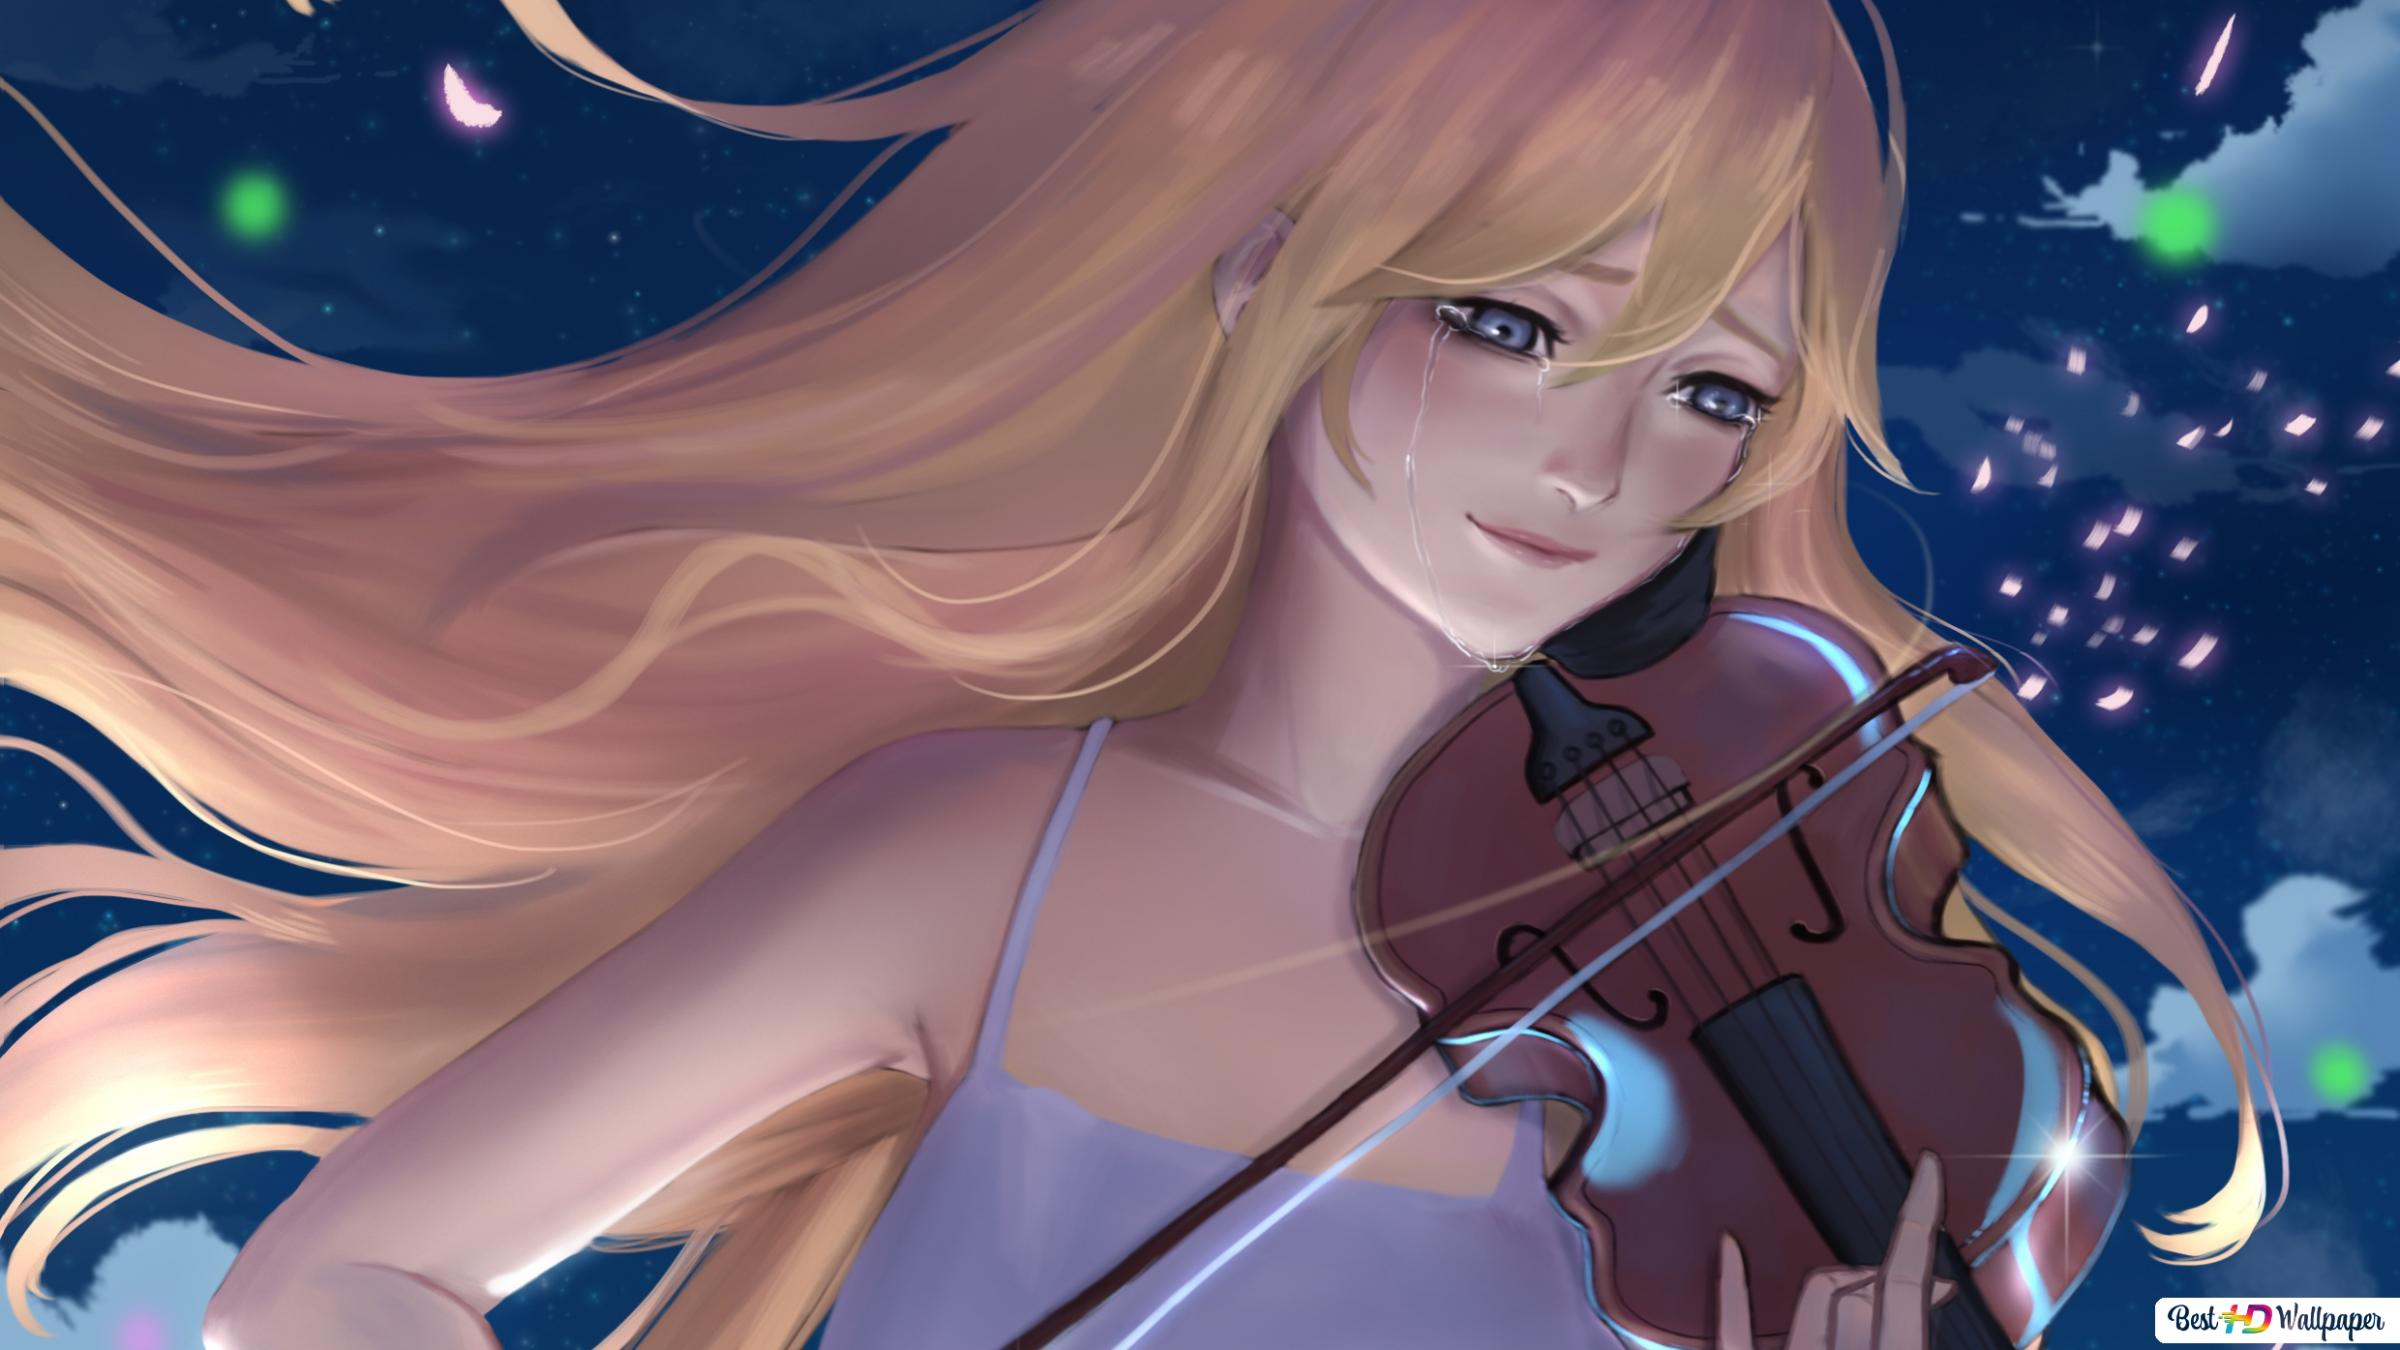 Your Lie In April Kaori Miyazono Violinist Hd Wallpaper Download